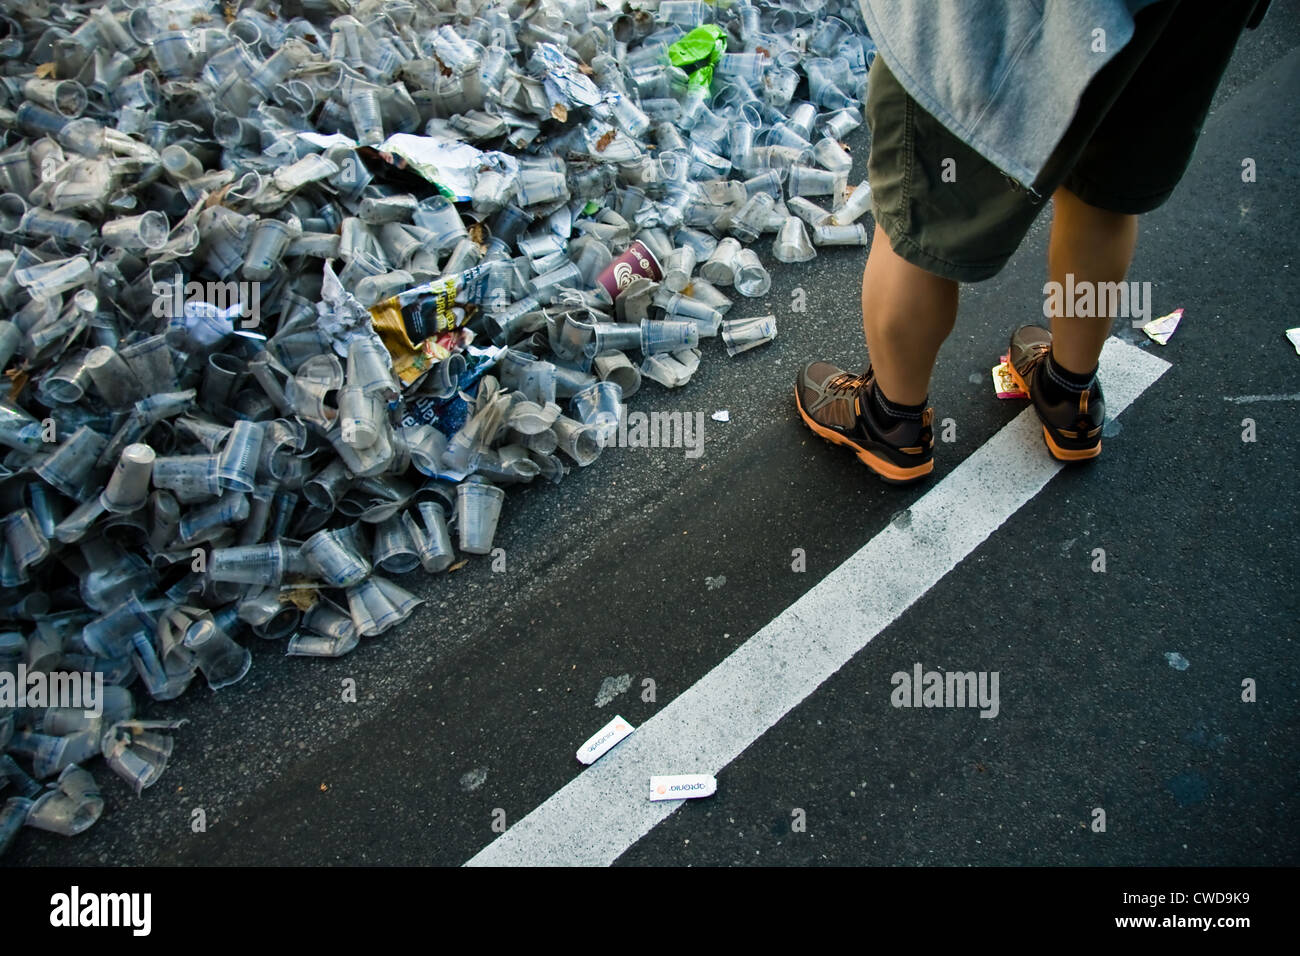 garbage,plastic cups,garbage mountain,waste disposal,street cleaning - Stock Image